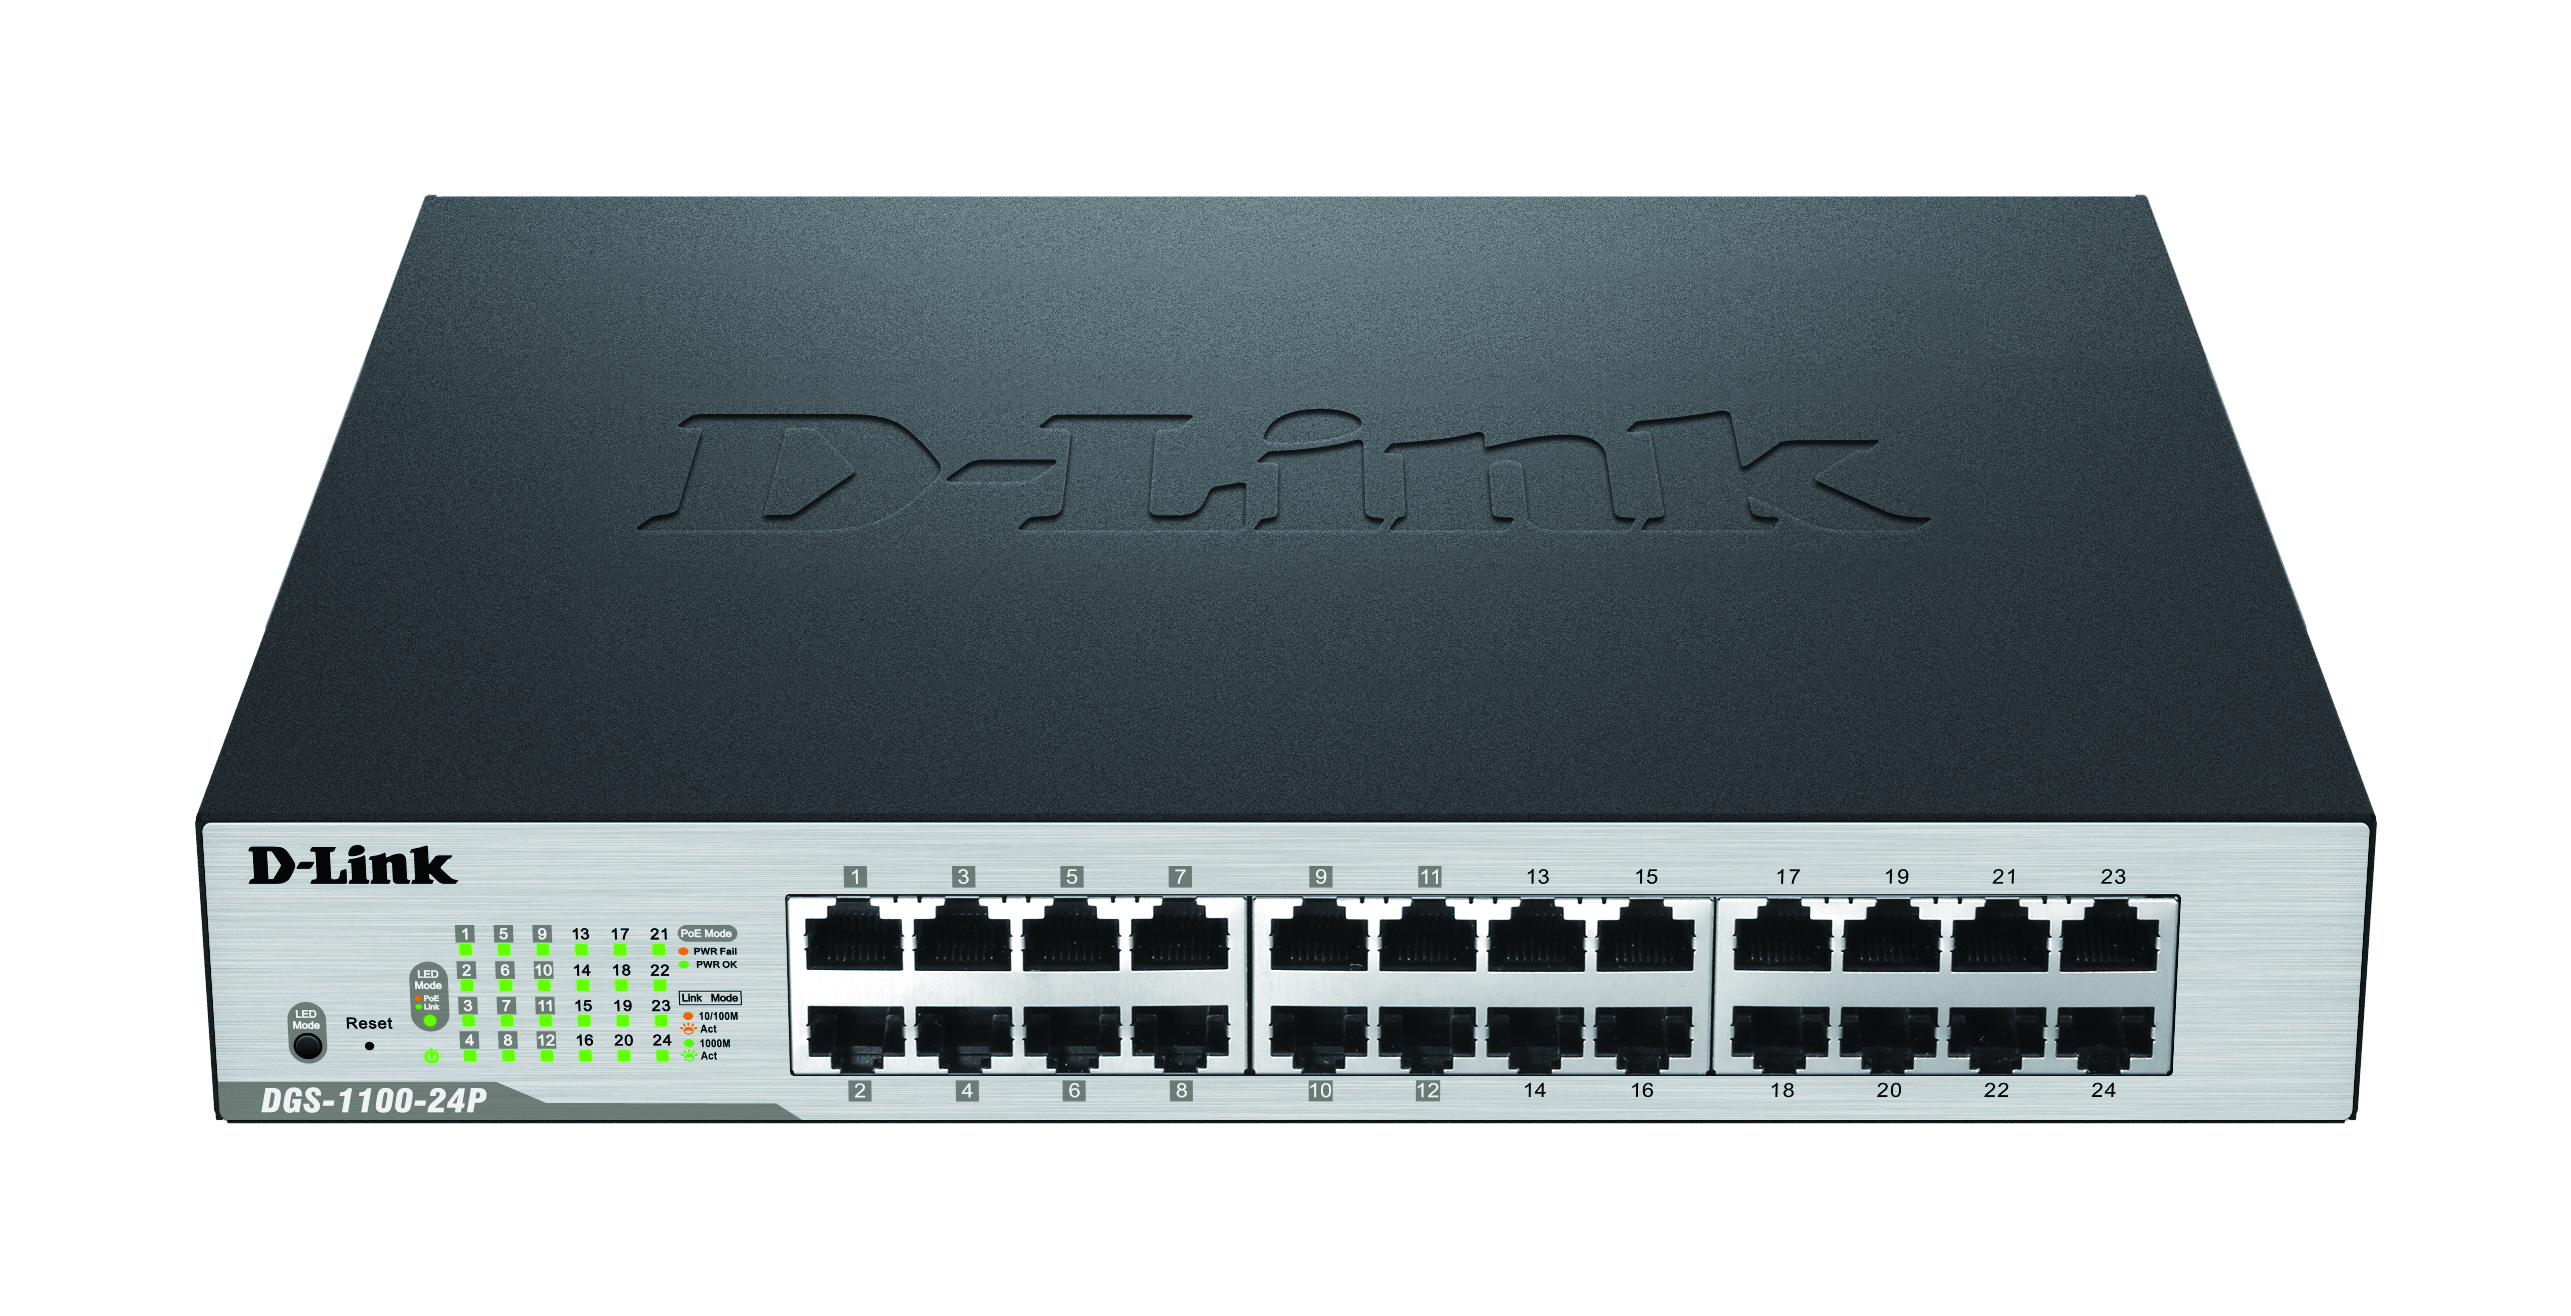 D Link 24 Port Poe Gigabit Smart Switch With 100w Power Budget Norbain 12